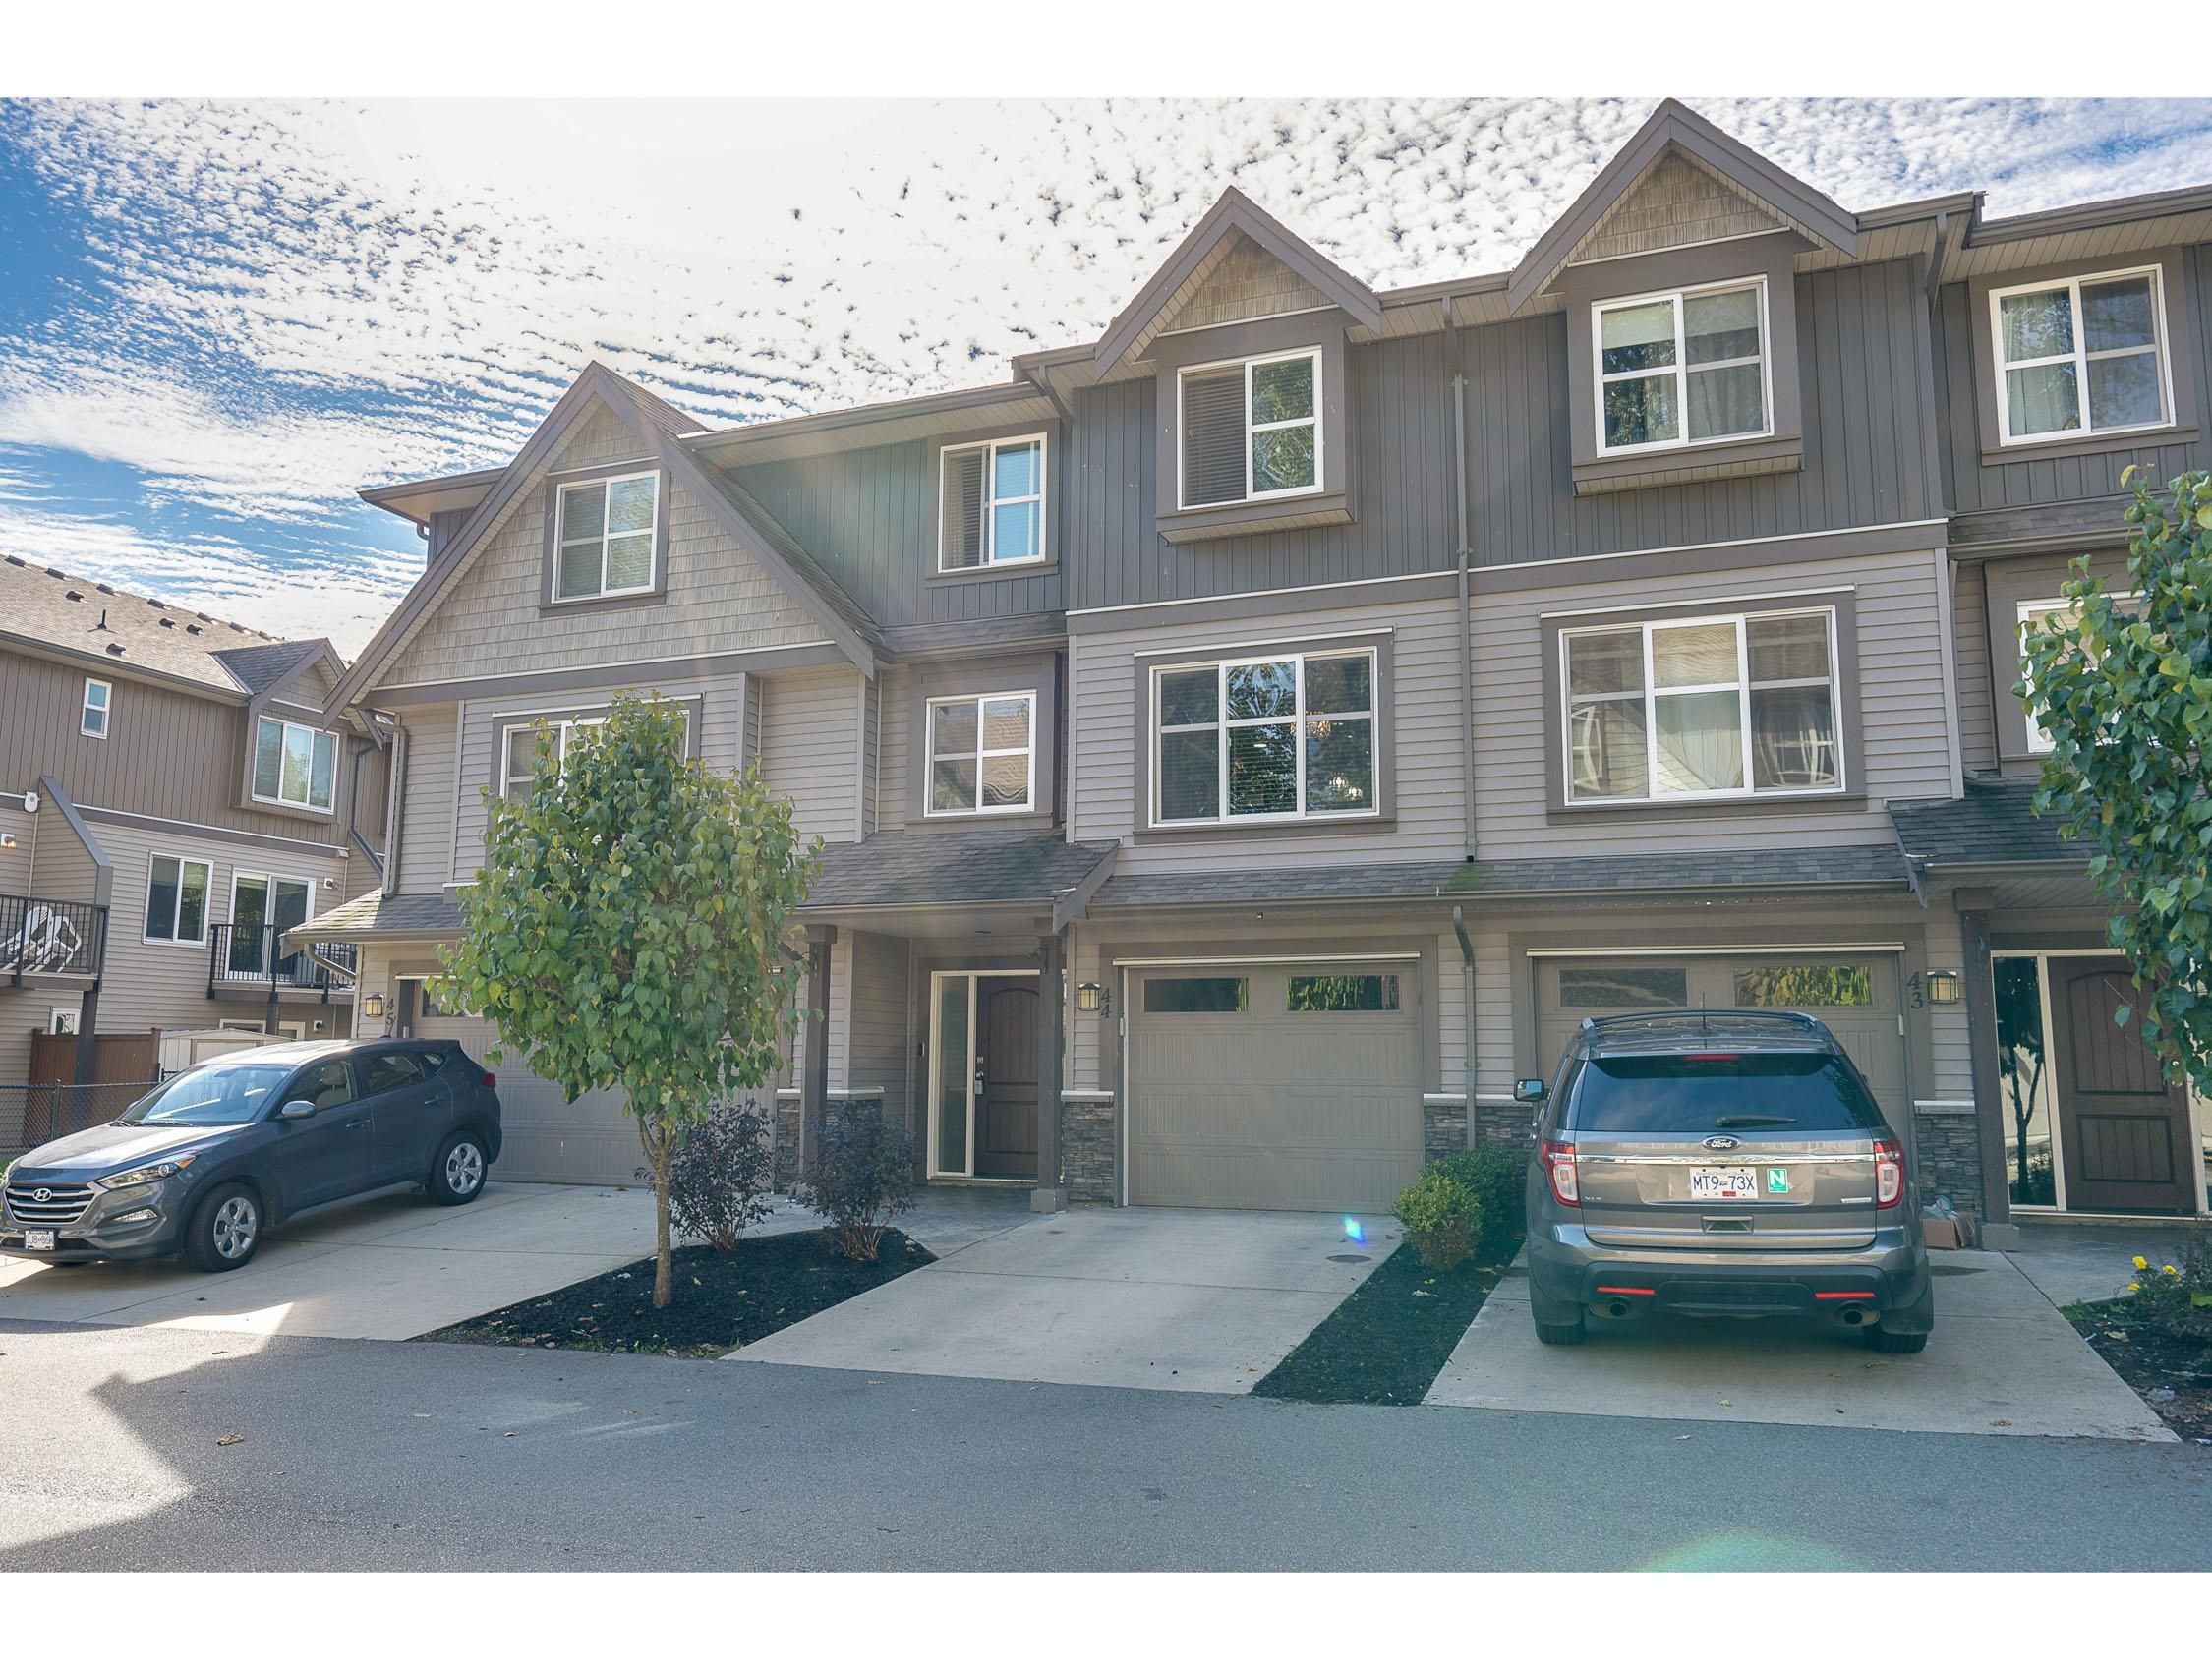 """Main Photo: 44 45085 WOLFE Road in Chilliwack: Chilliwack W Young-Well Townhouse for sale in """"Townsend Terrace"""" : MLS®# R2620127"""